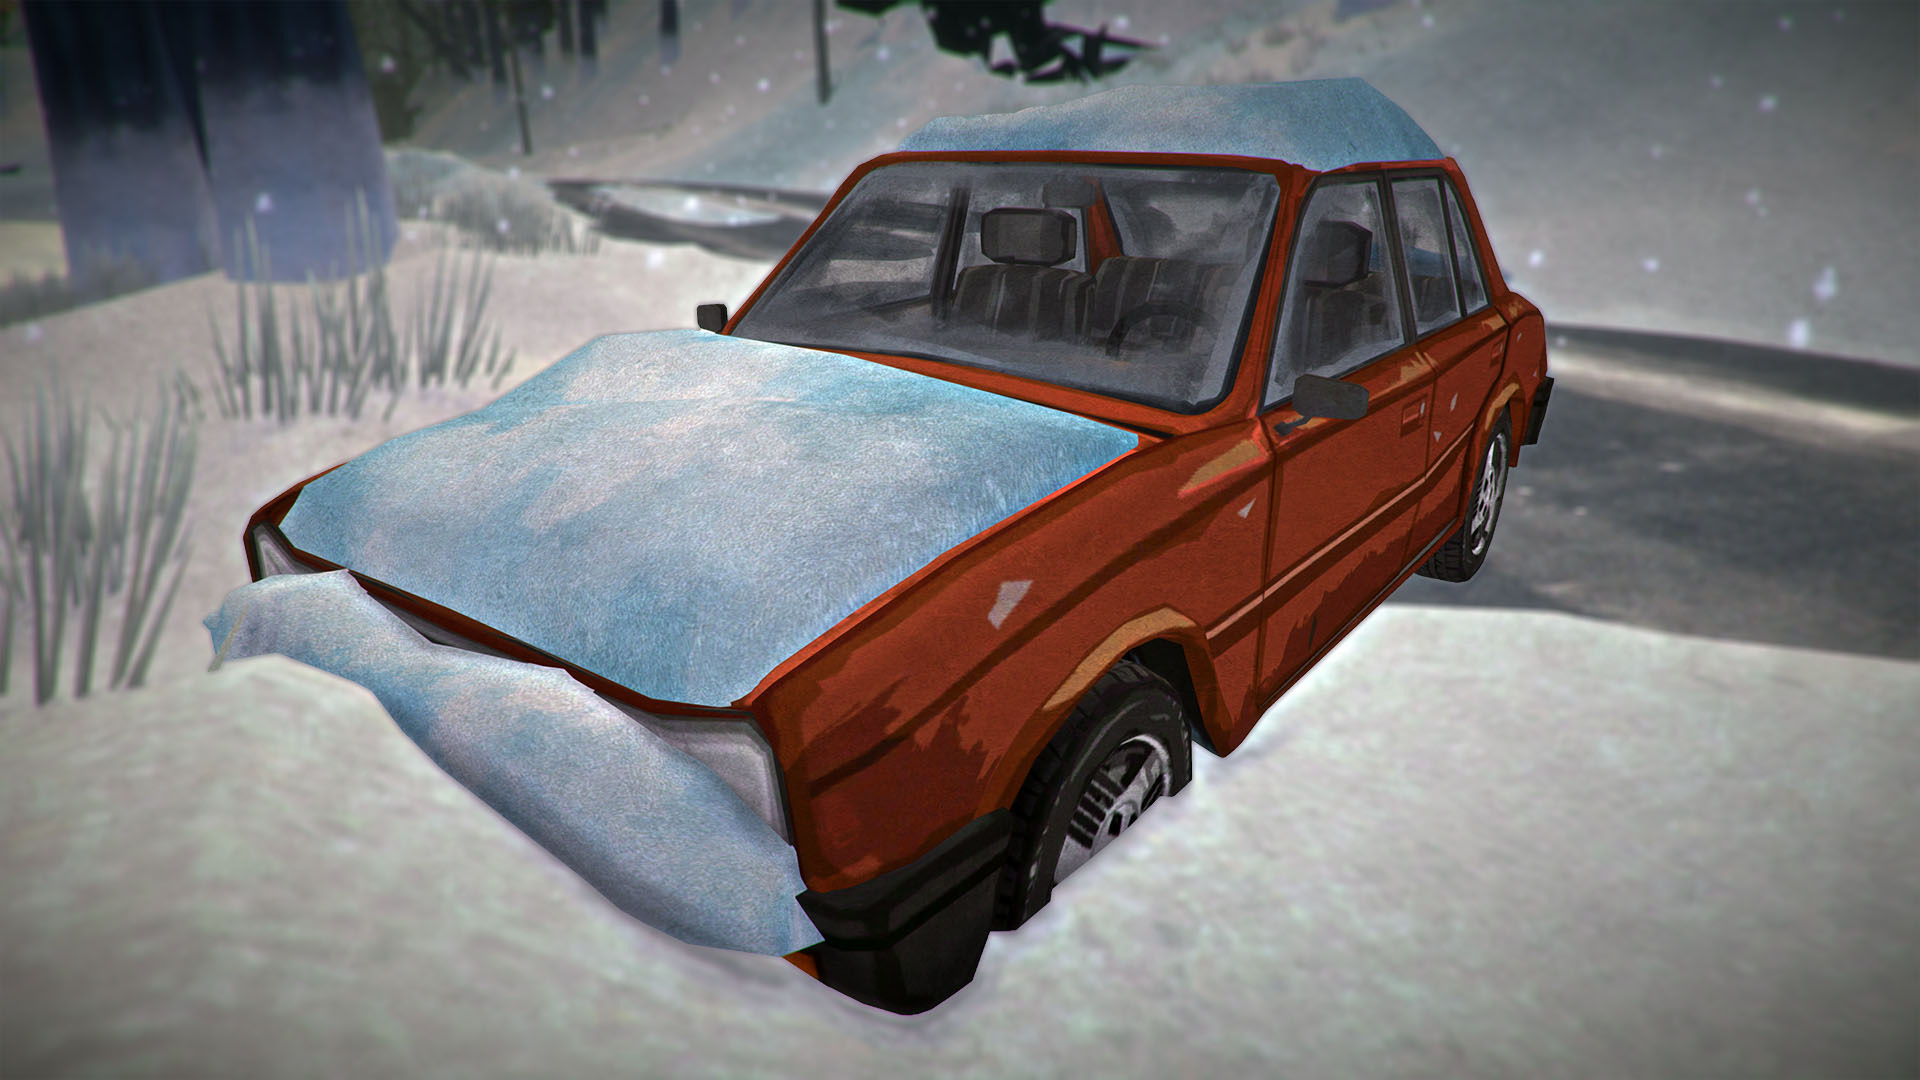 Car | The Long Dark Wiki | FANDOM powered by Wikia